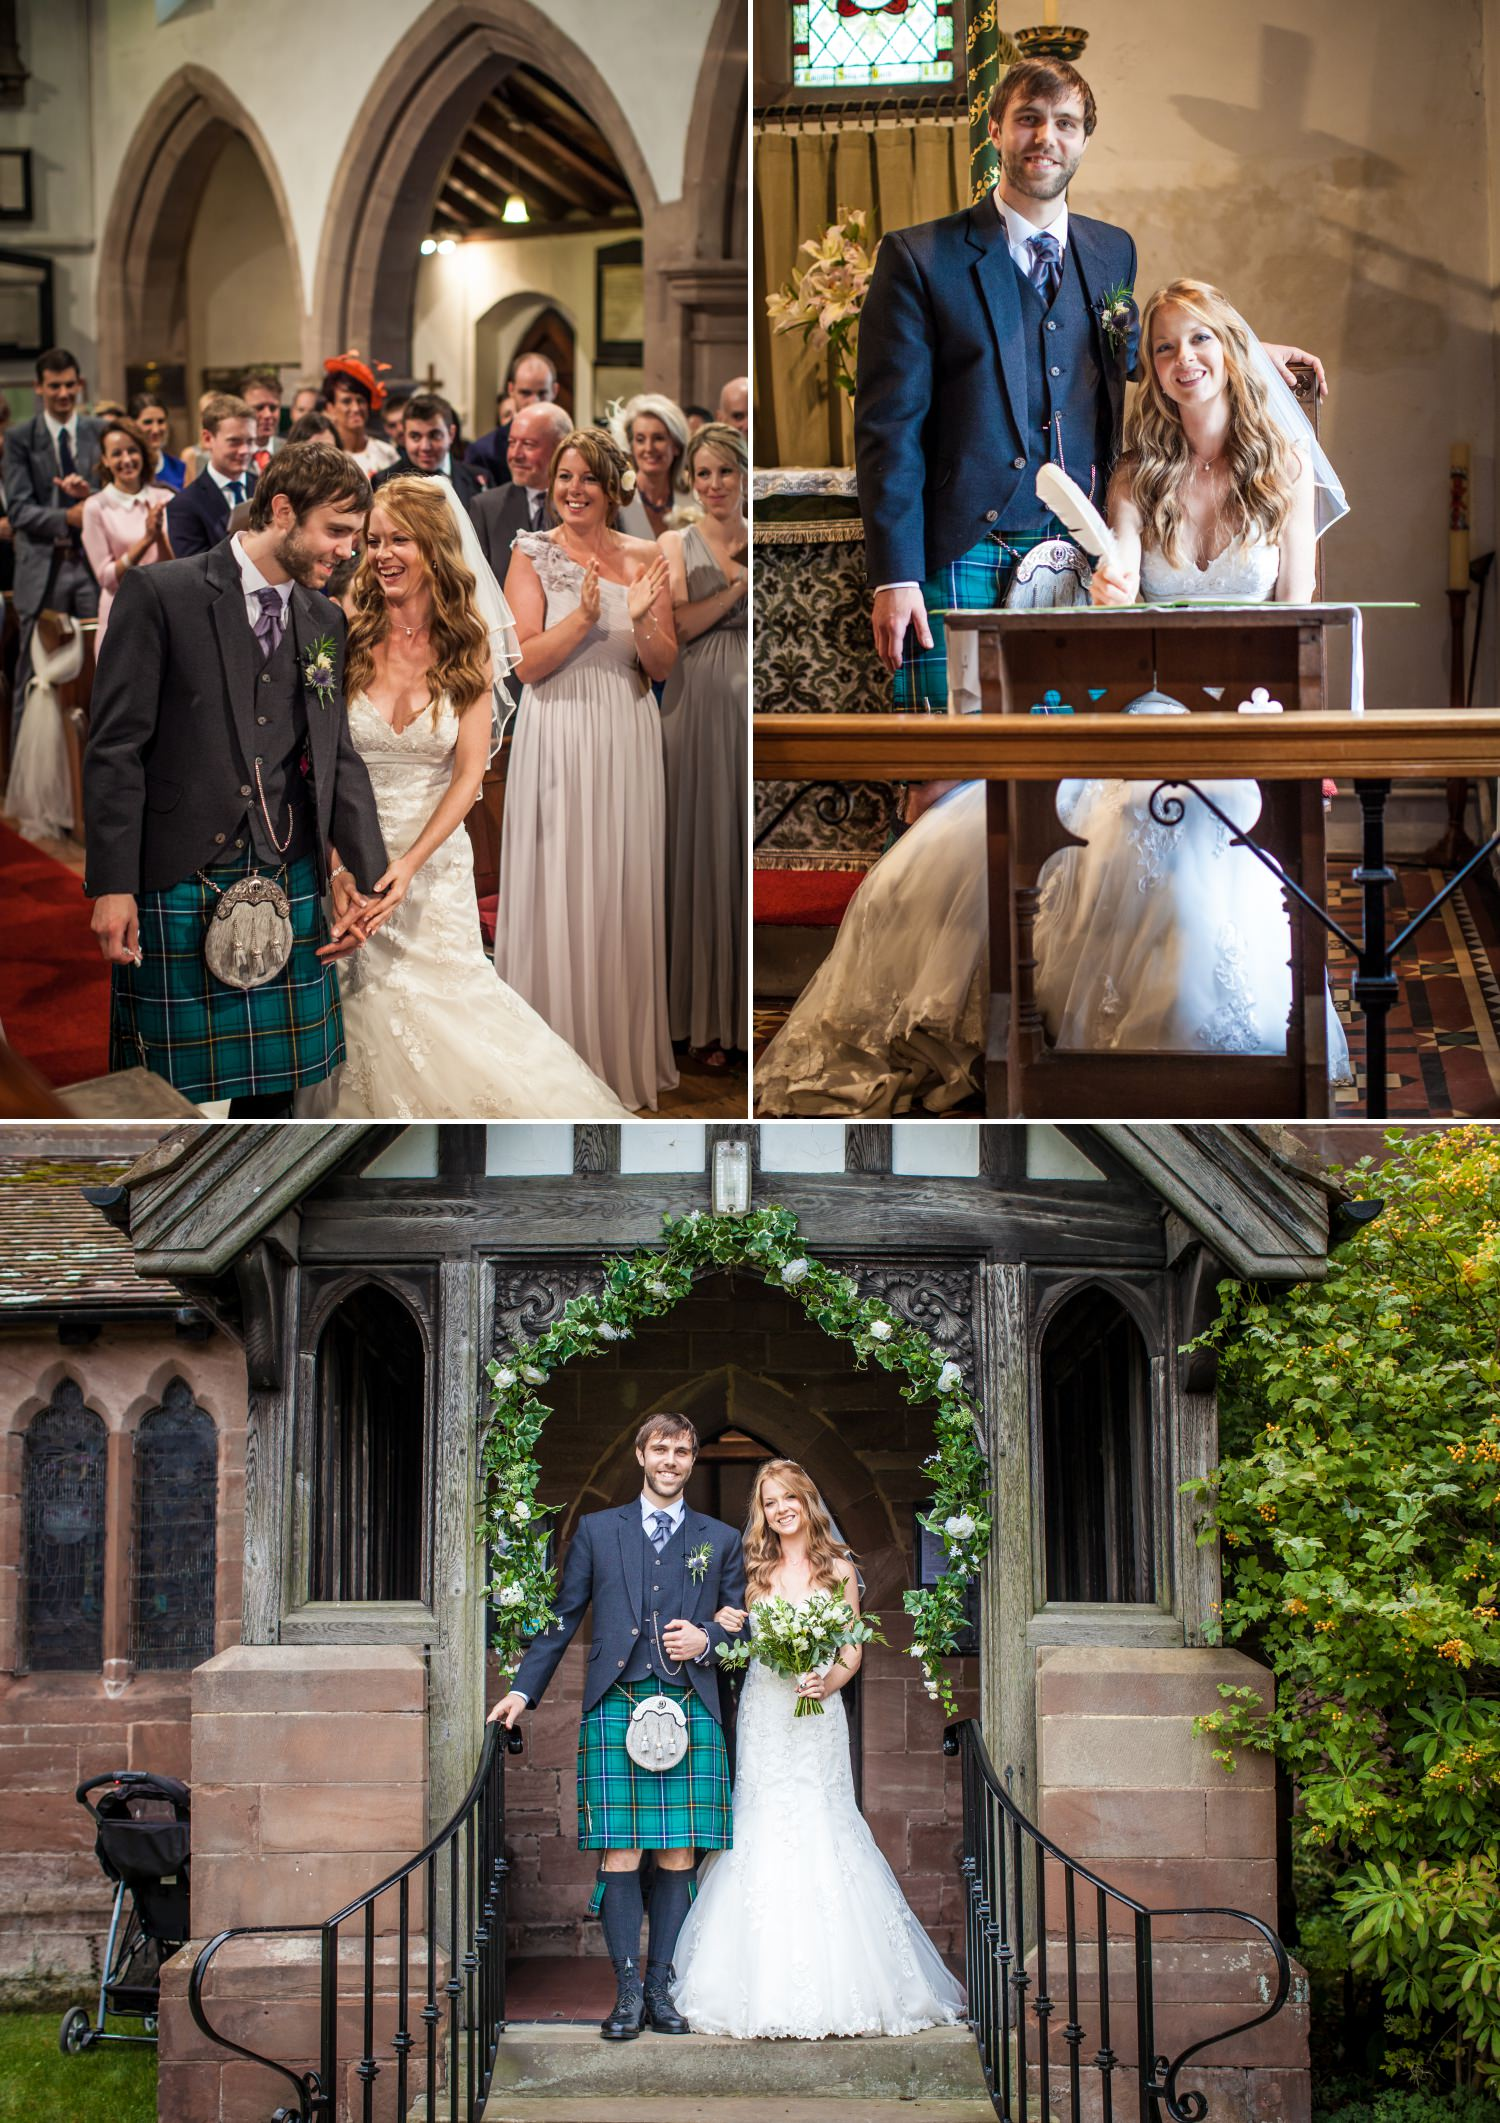 Wedding photography of the wedding ceremony at Hundred House Hotel